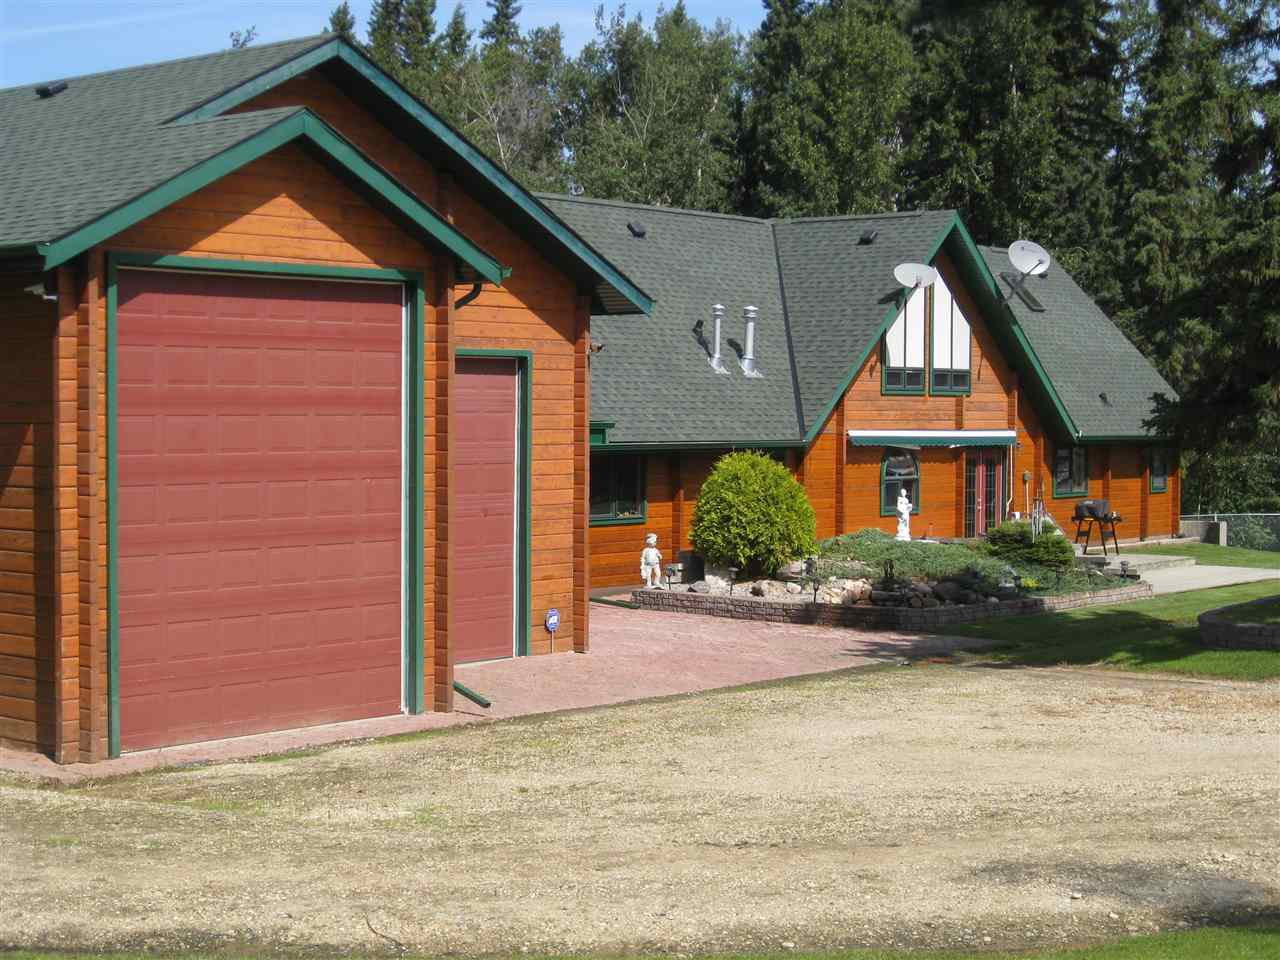 Main Photo: 58 5124 Twp Rd 554: Rural Lac Ste. Anne County House for sale : MLS®# E4059076